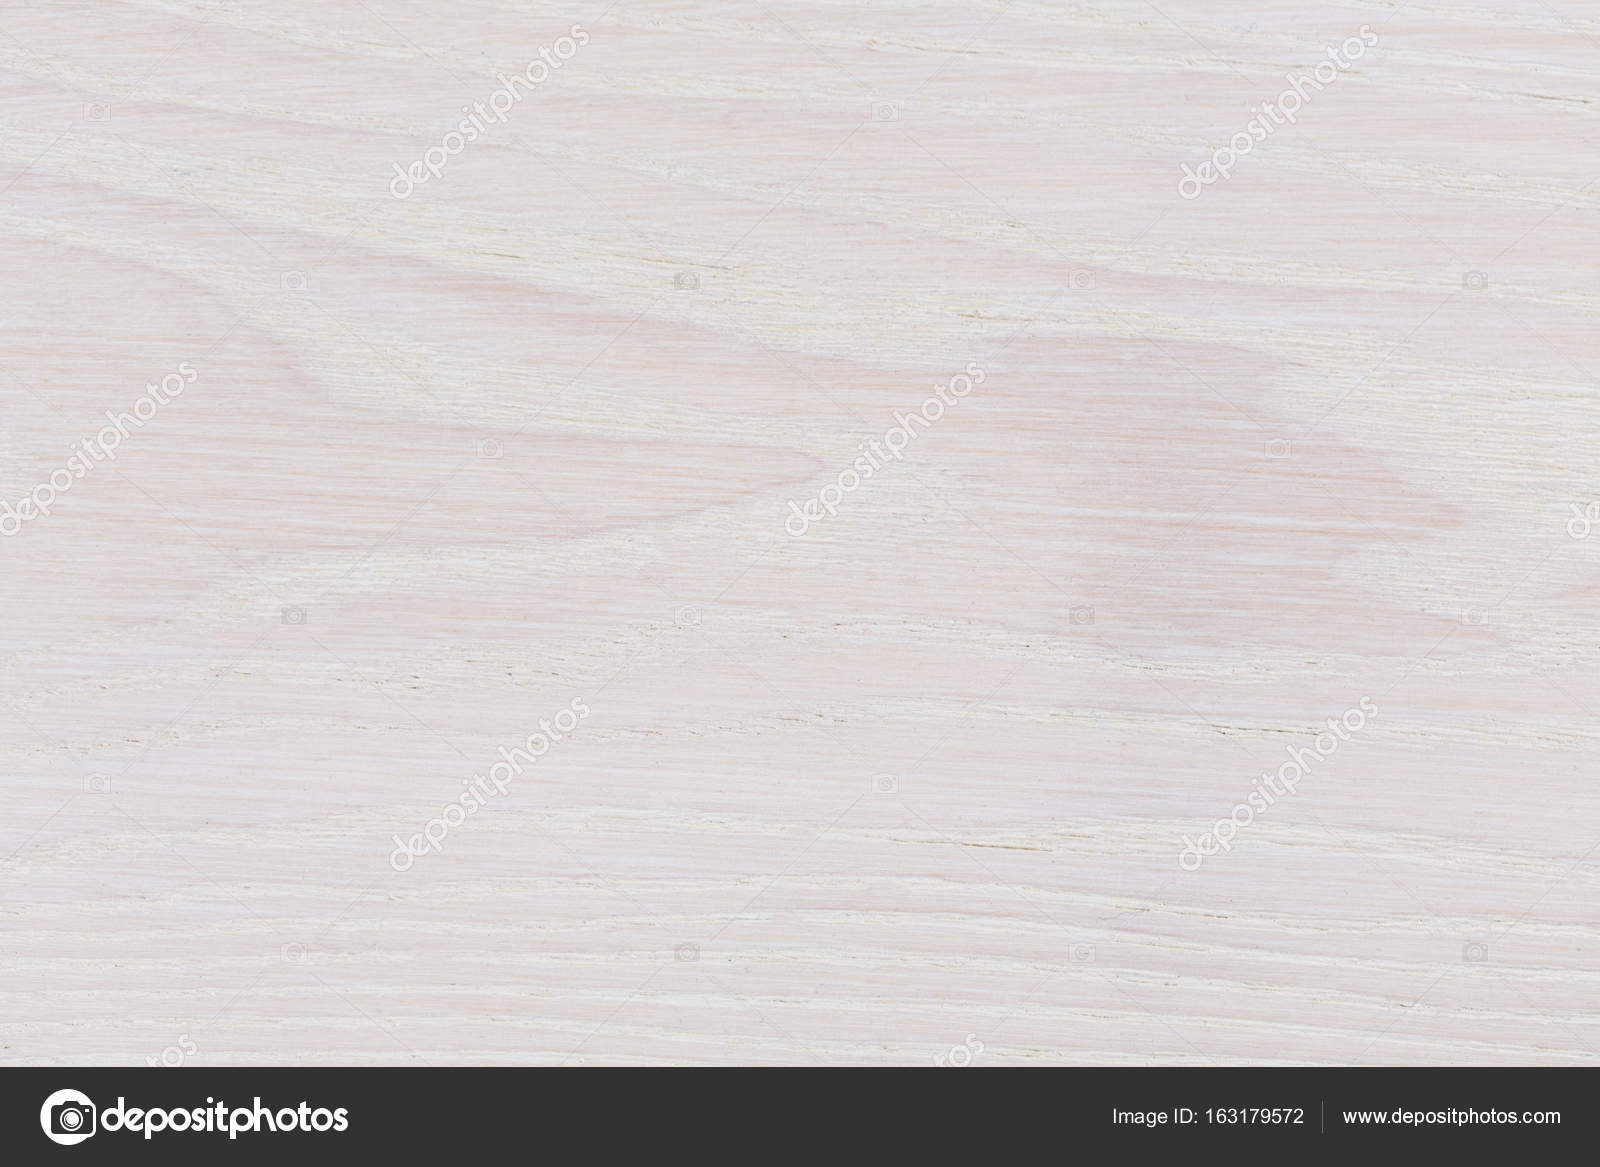 Oak Plywood Plywood Texture Tabletop Pastel Floor Above Oak White Gray Timb